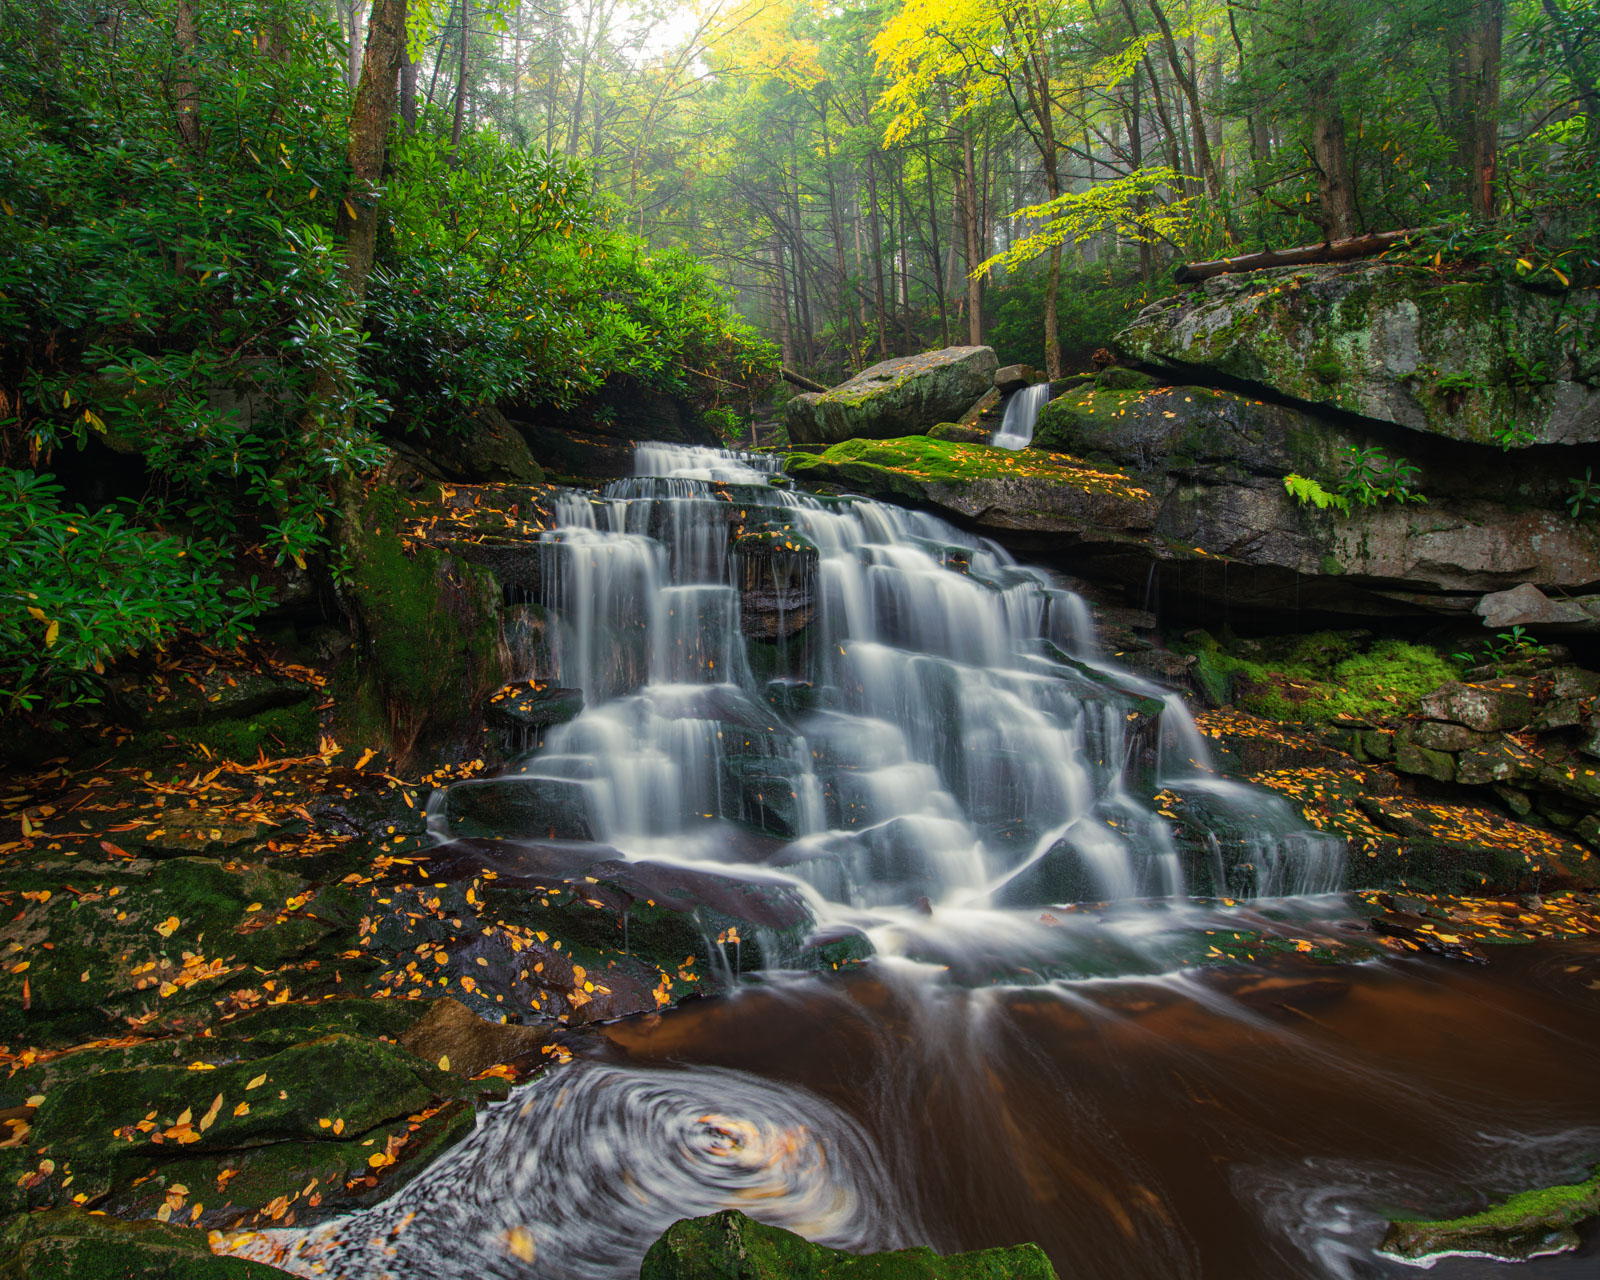 Second Falls of Shays Run, Elekala Falls, on a wet and mistly October day in Blackwater Falls State Park, West Virginia.